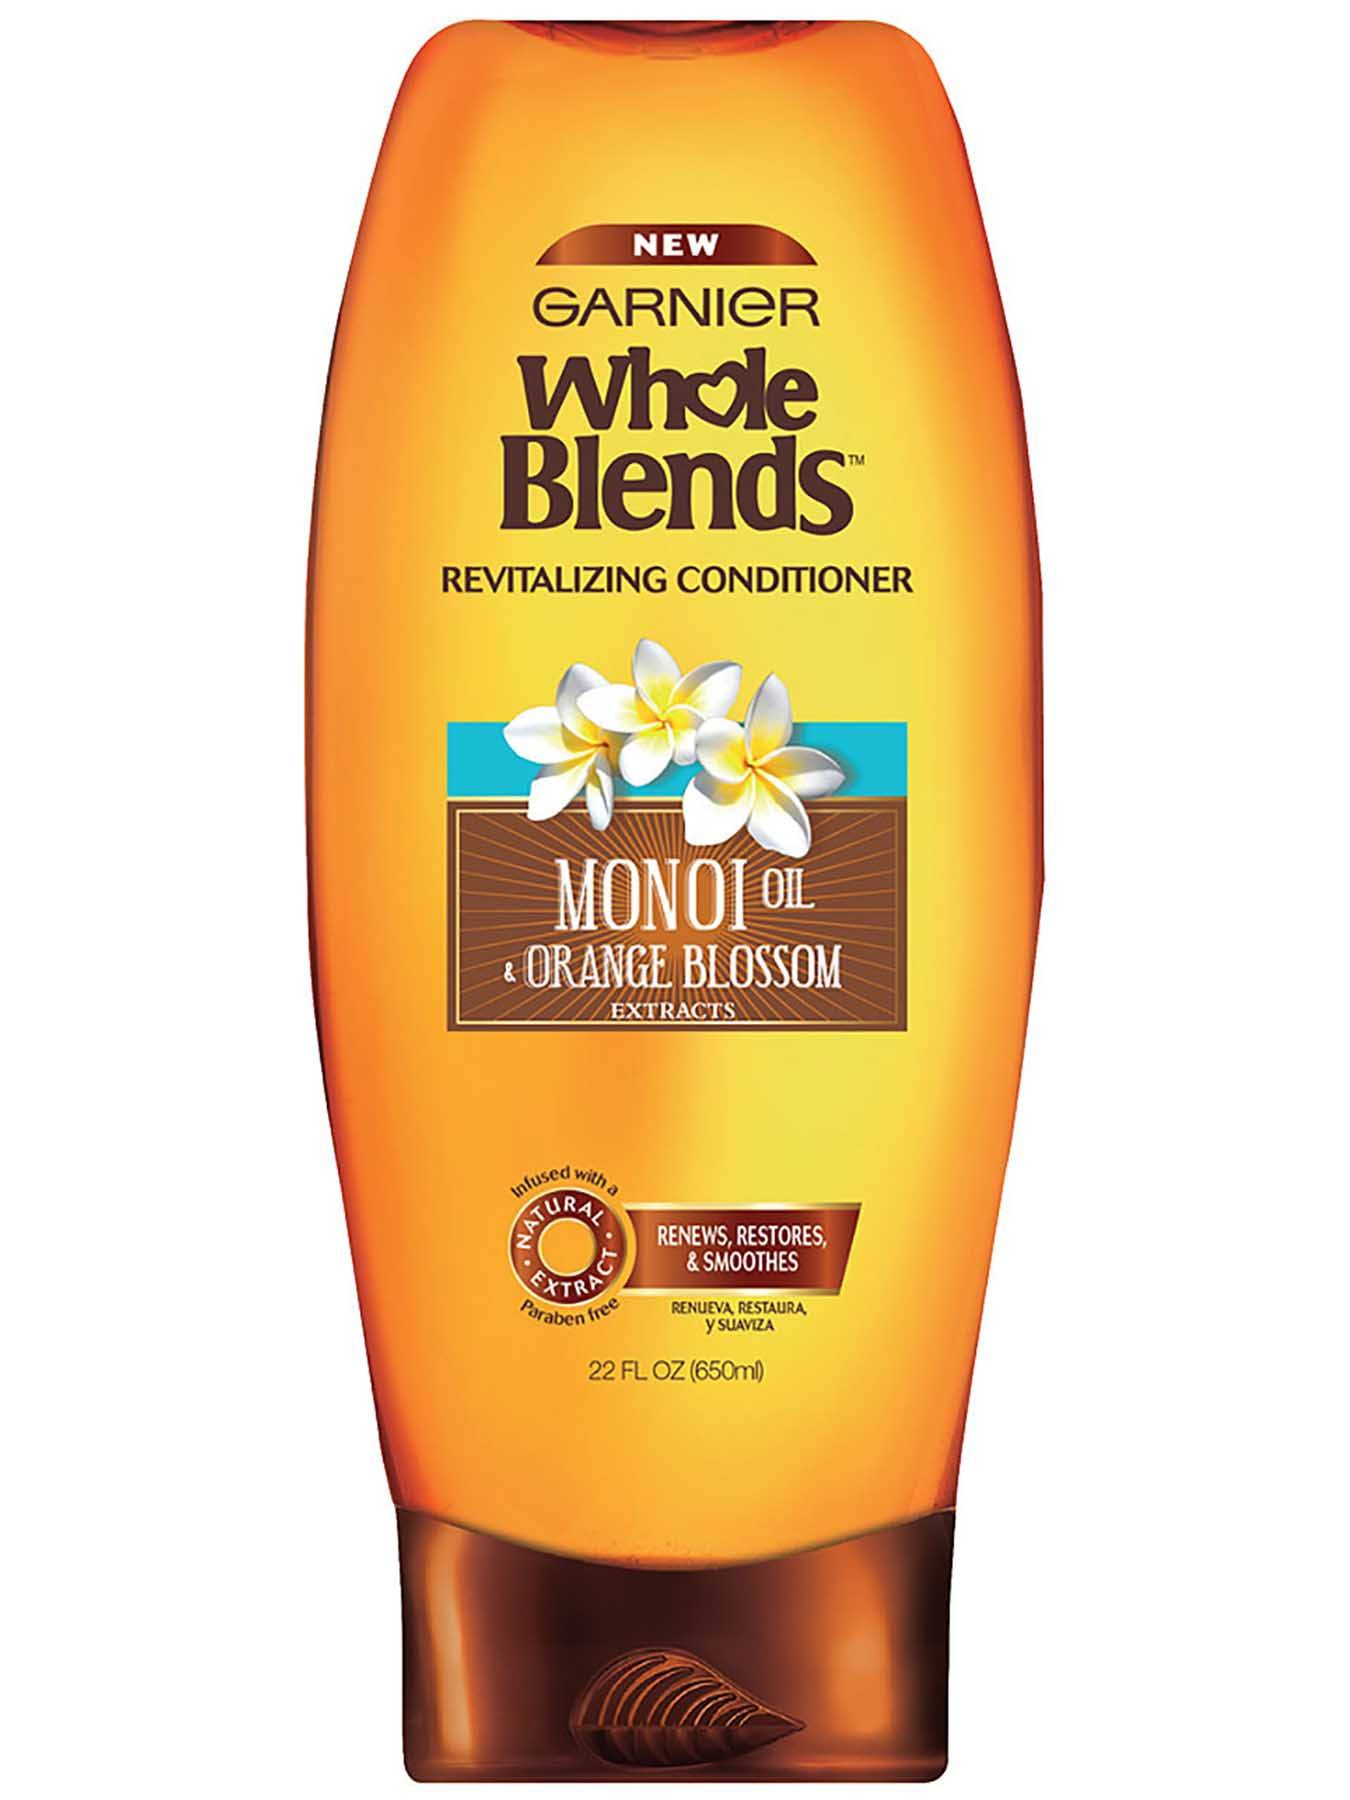 Garnier Whole Blends Revitalizing Conditioner Monoi Oil Orange Blossom Extracts Front Of Bottle